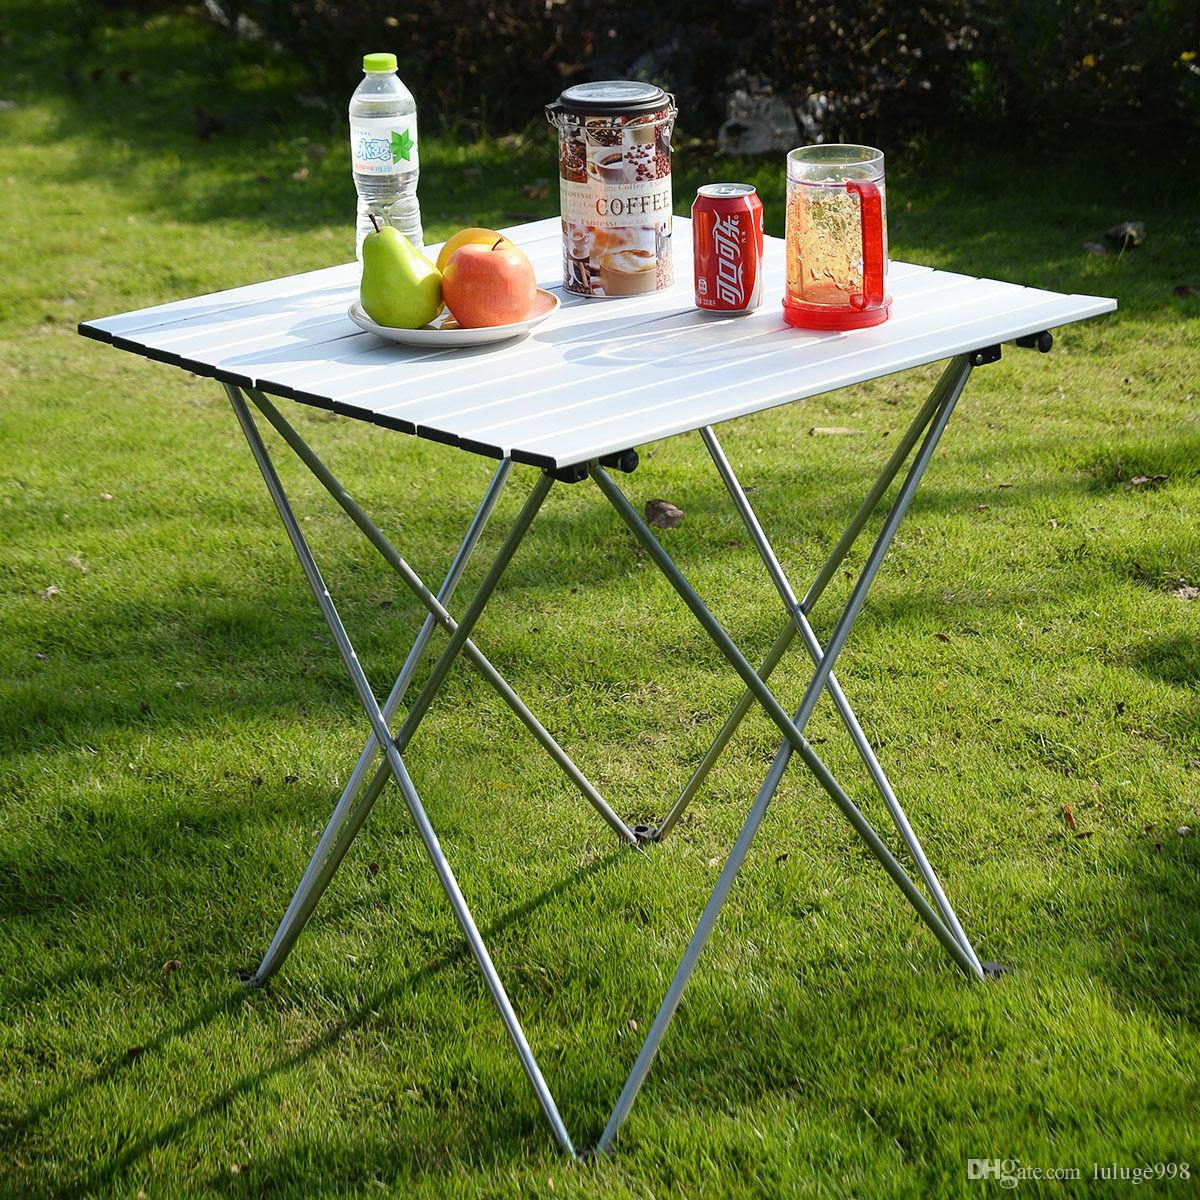 aluminum roll up table folding camping outdoor indoor picnic w bag rh dhgate com